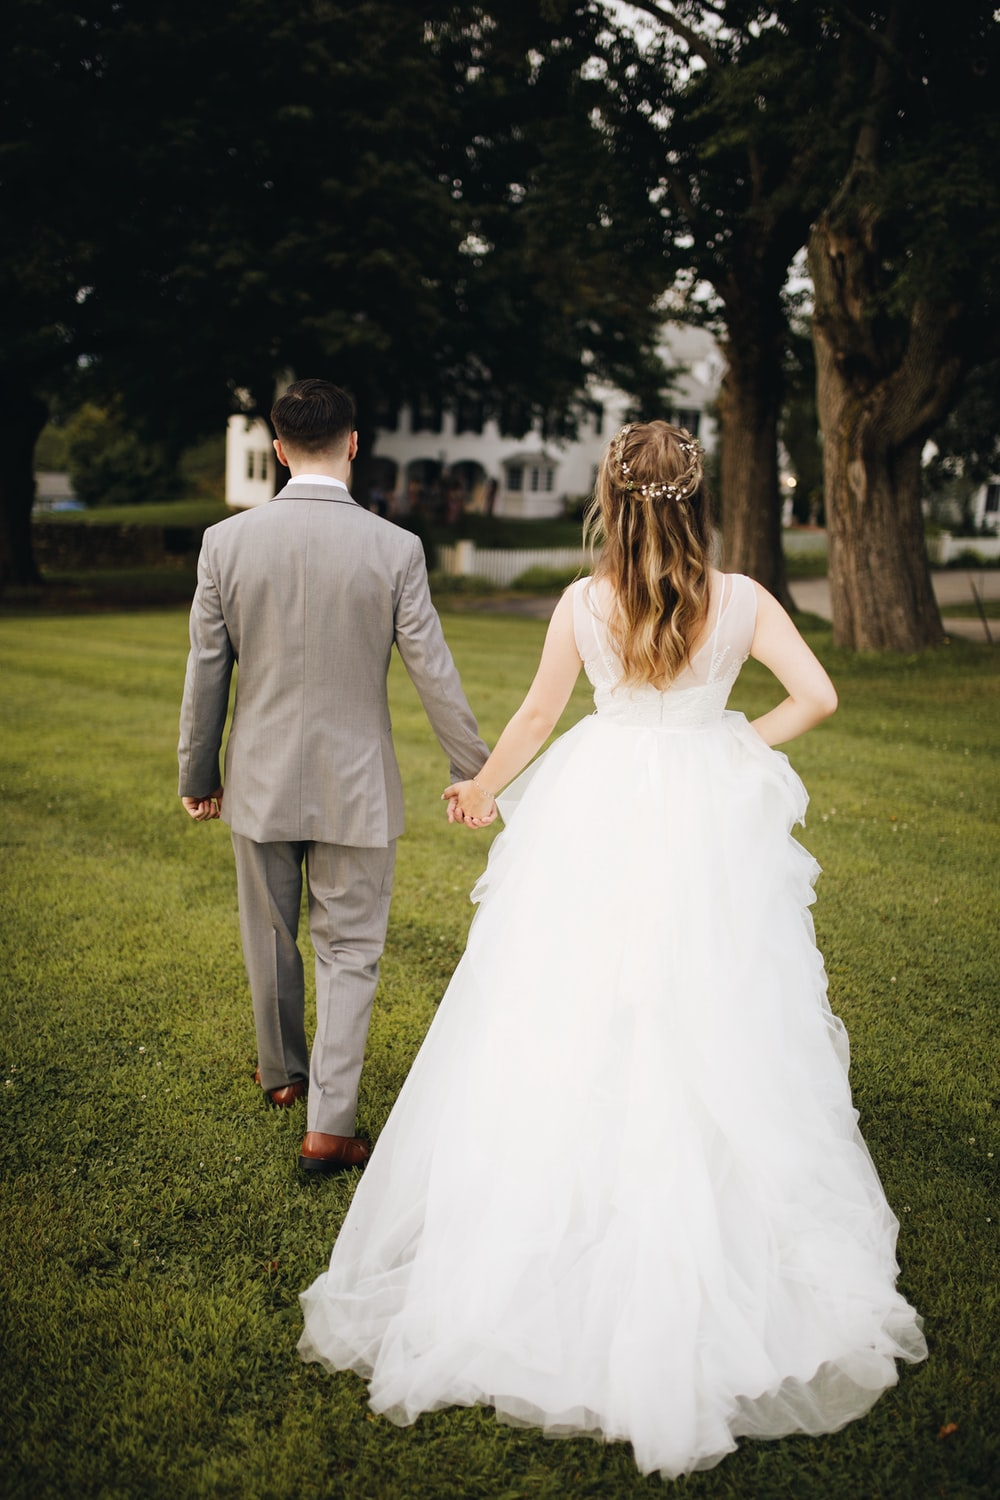 man in gray suit and woman in white wedding dress walking on green grass field during